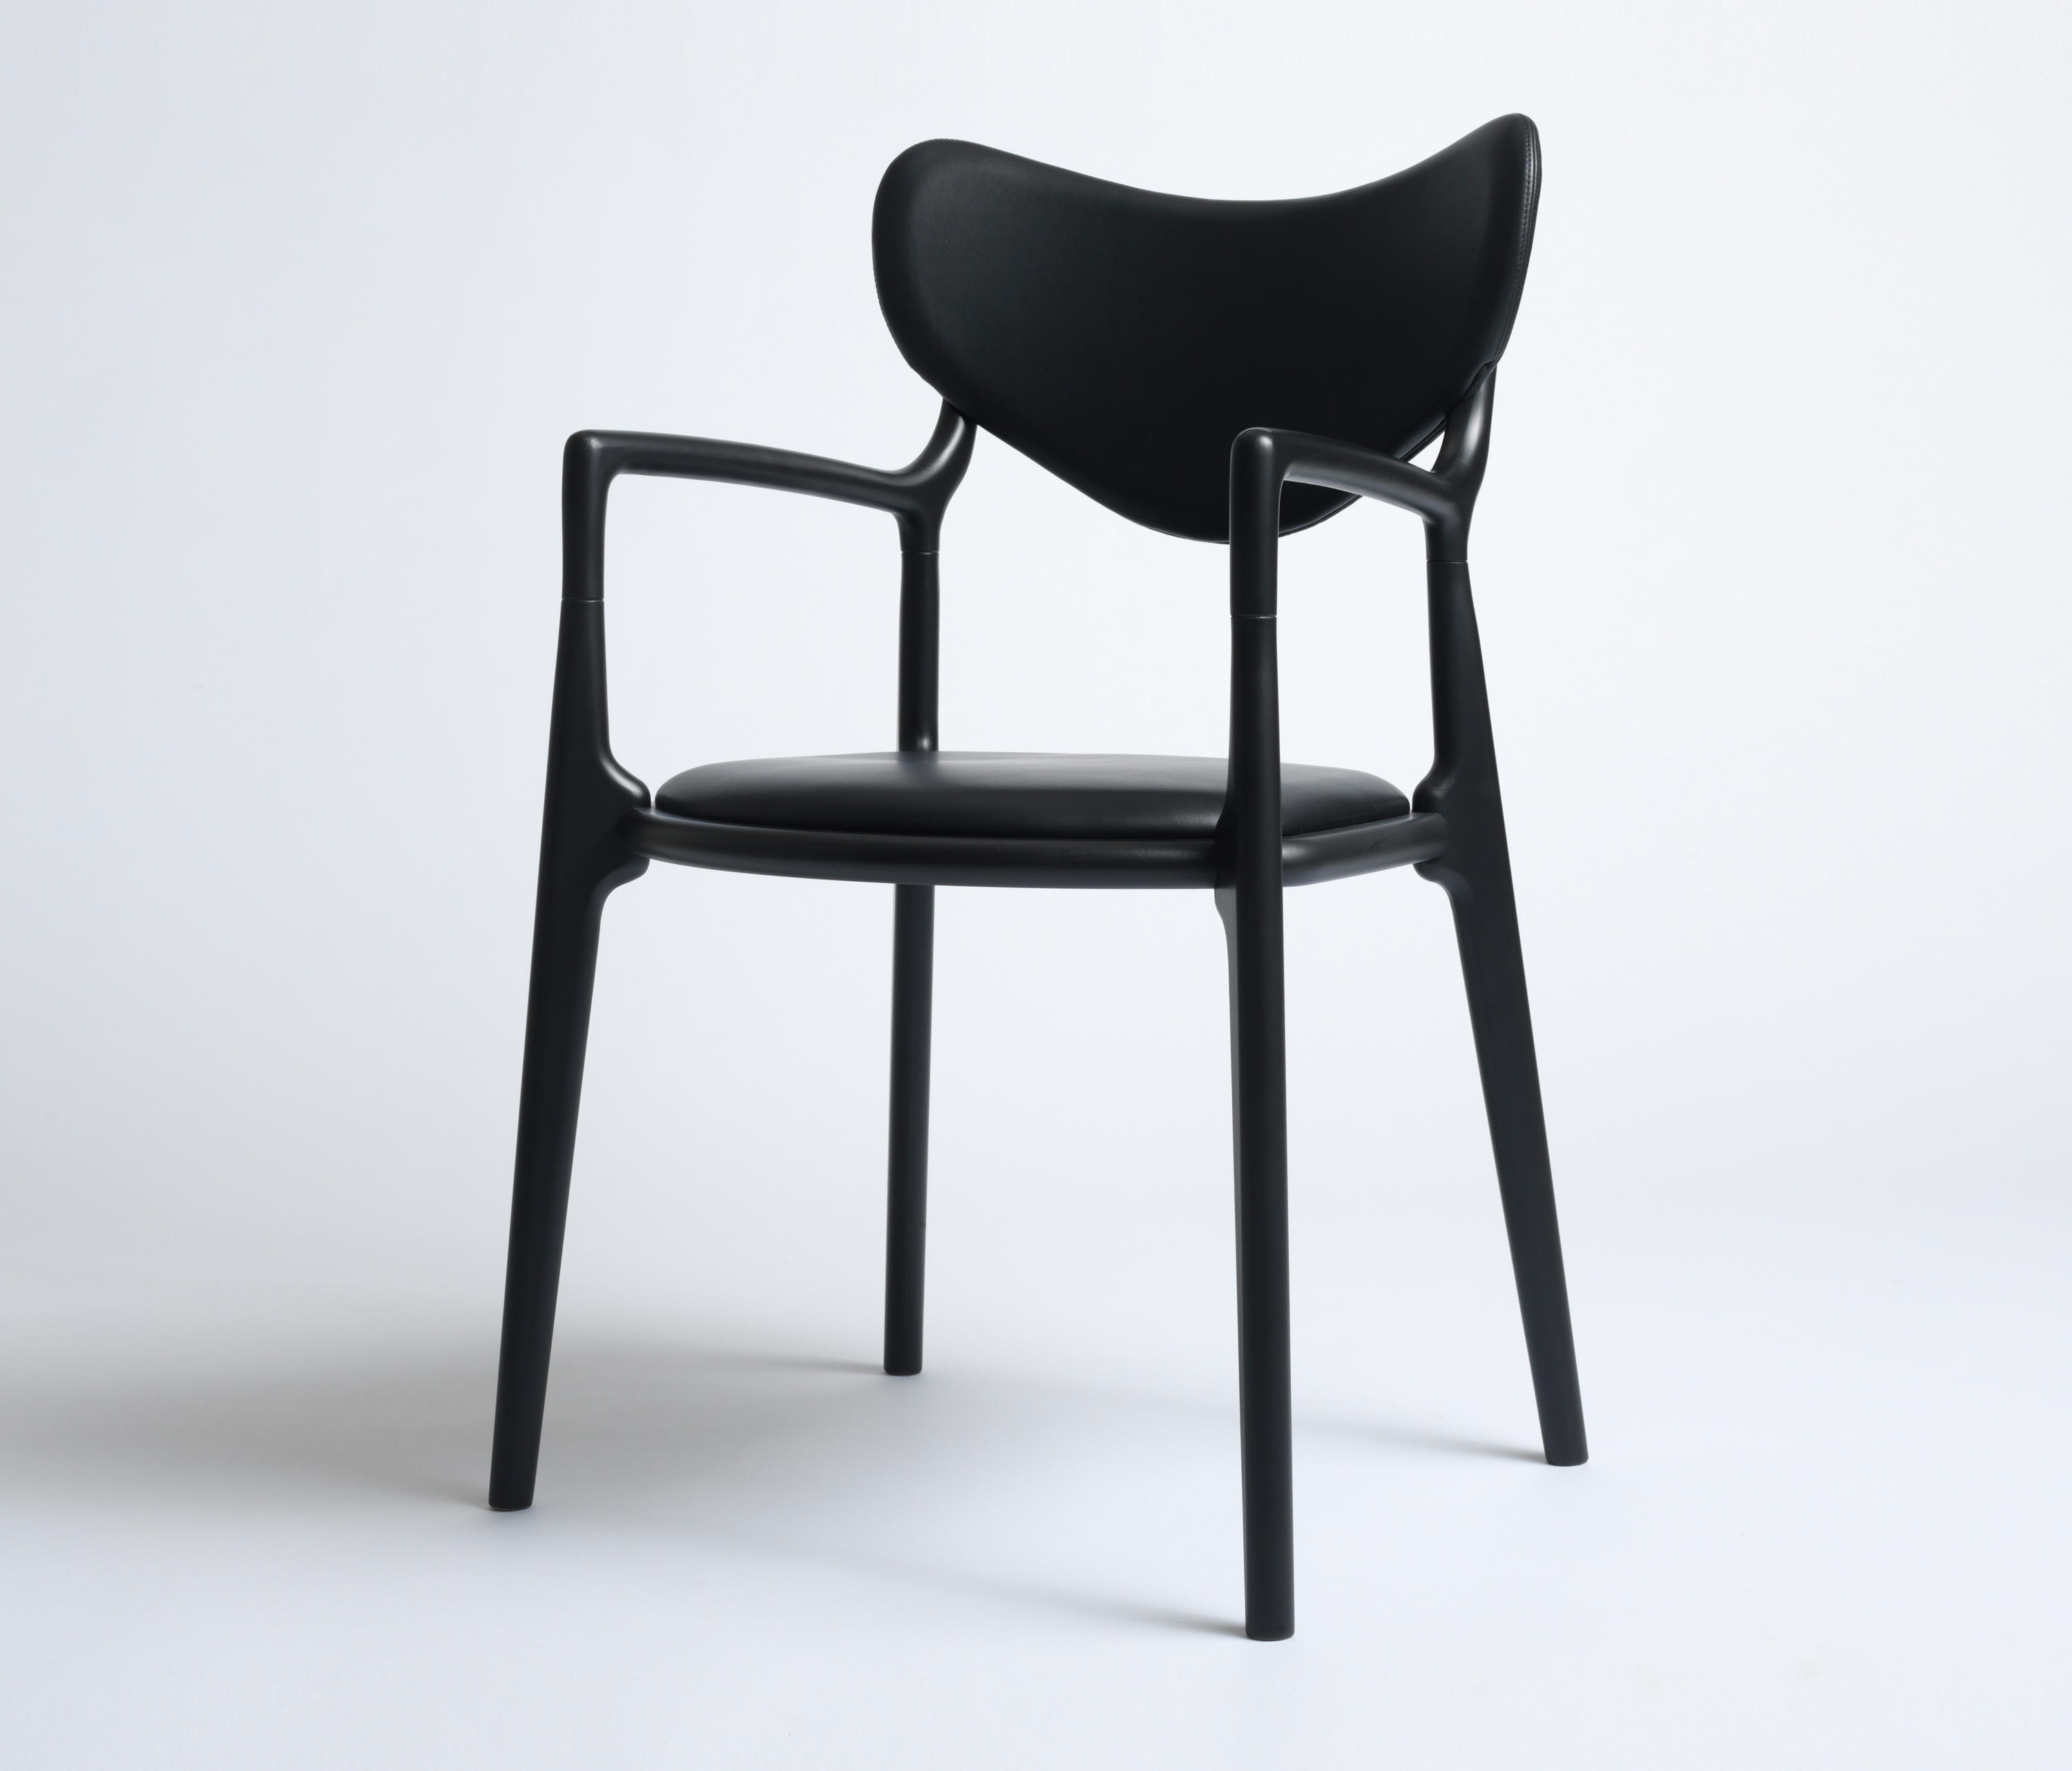 SALON CHAIR - BEECH BLACK - Chairs from True North Designs   Architonic